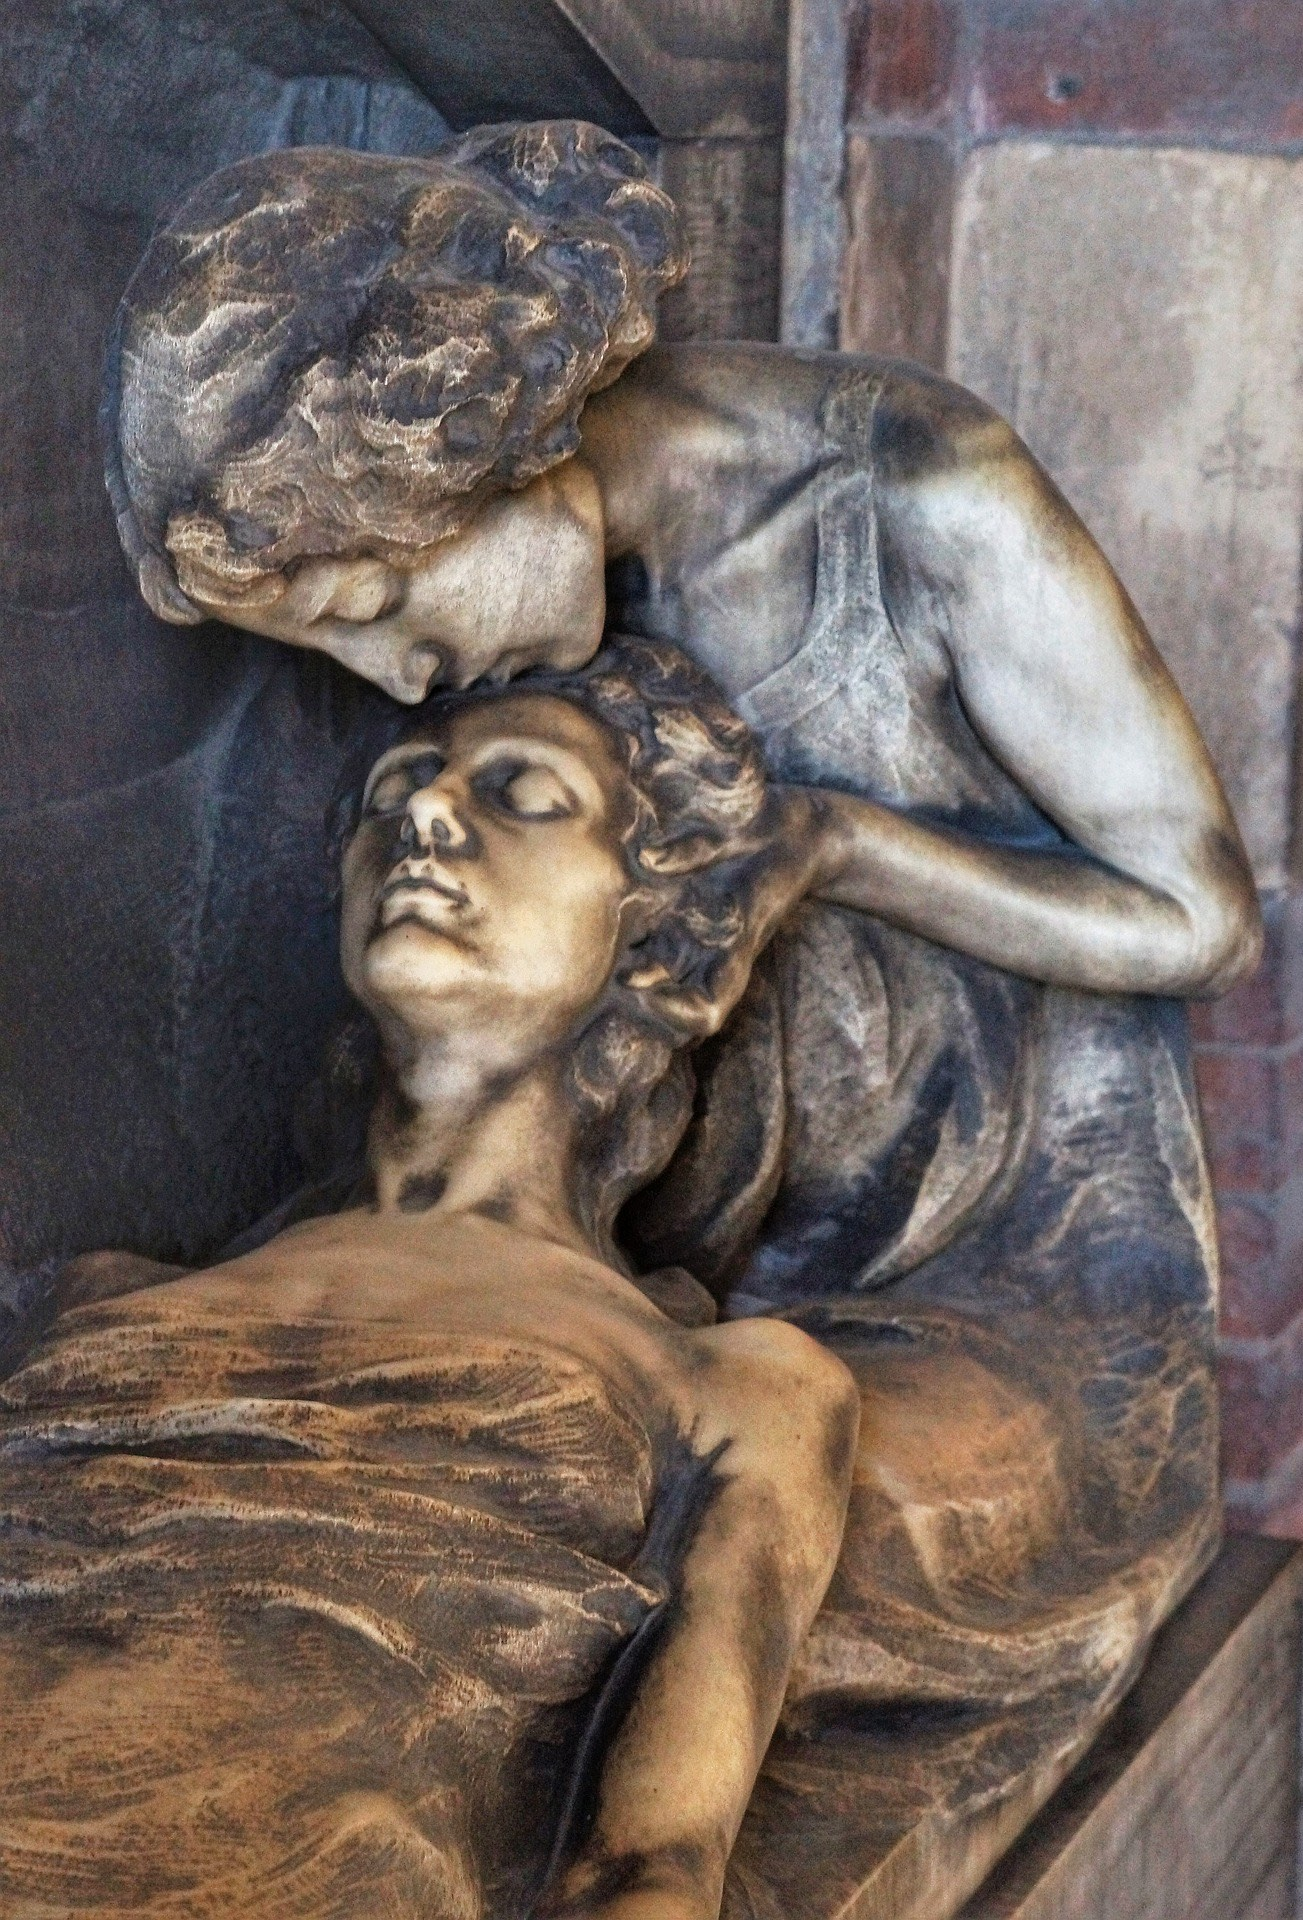 The Monumental Cemetery of Milan